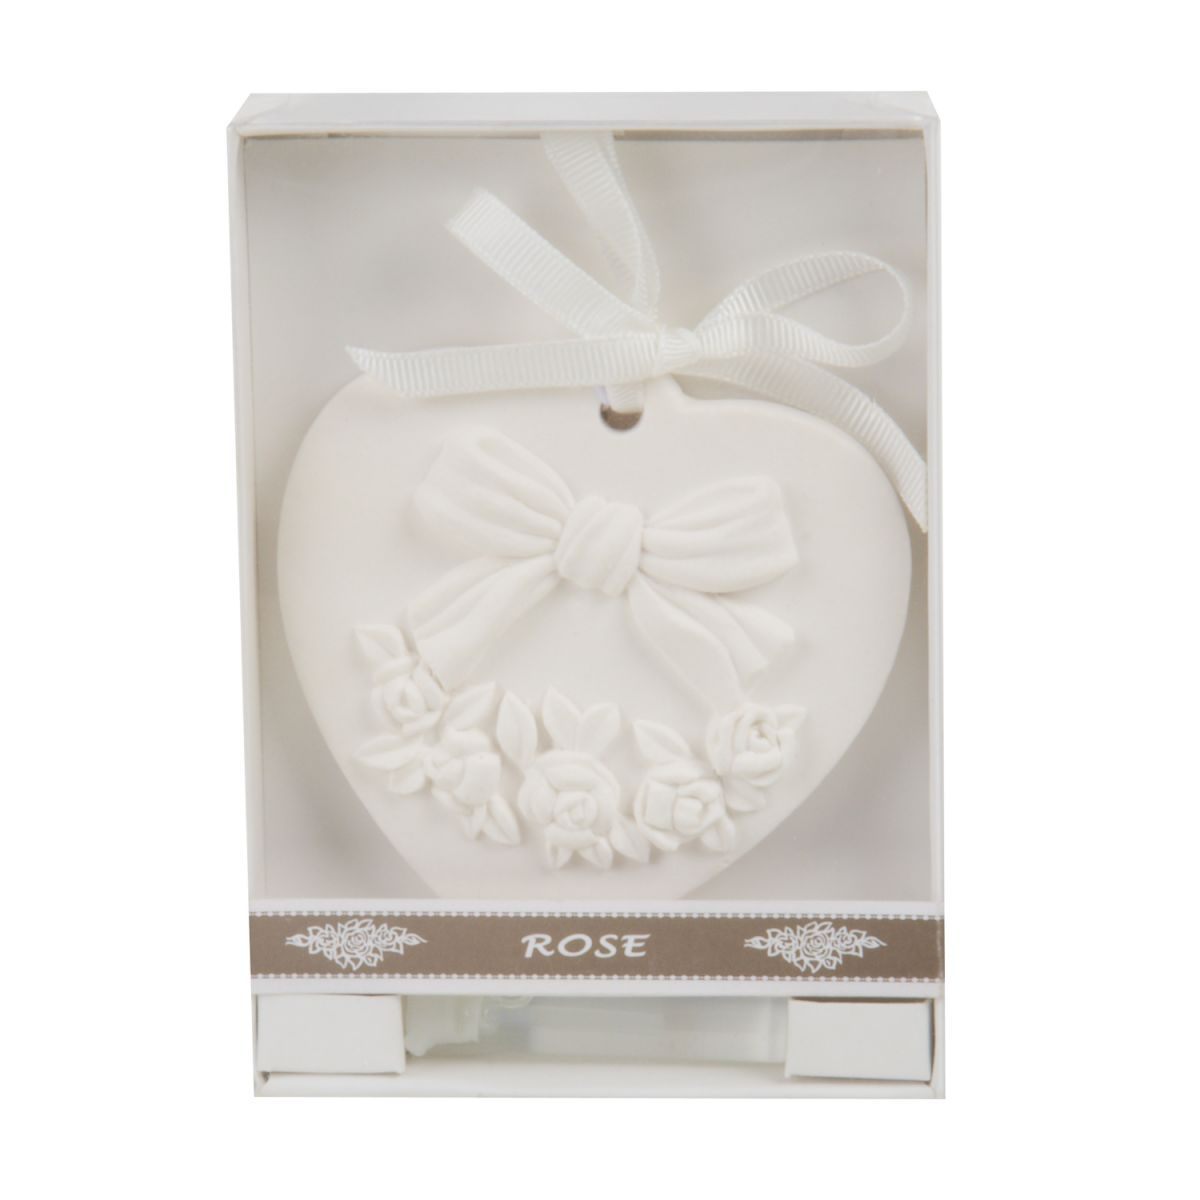 rose scented ornament in giftbox